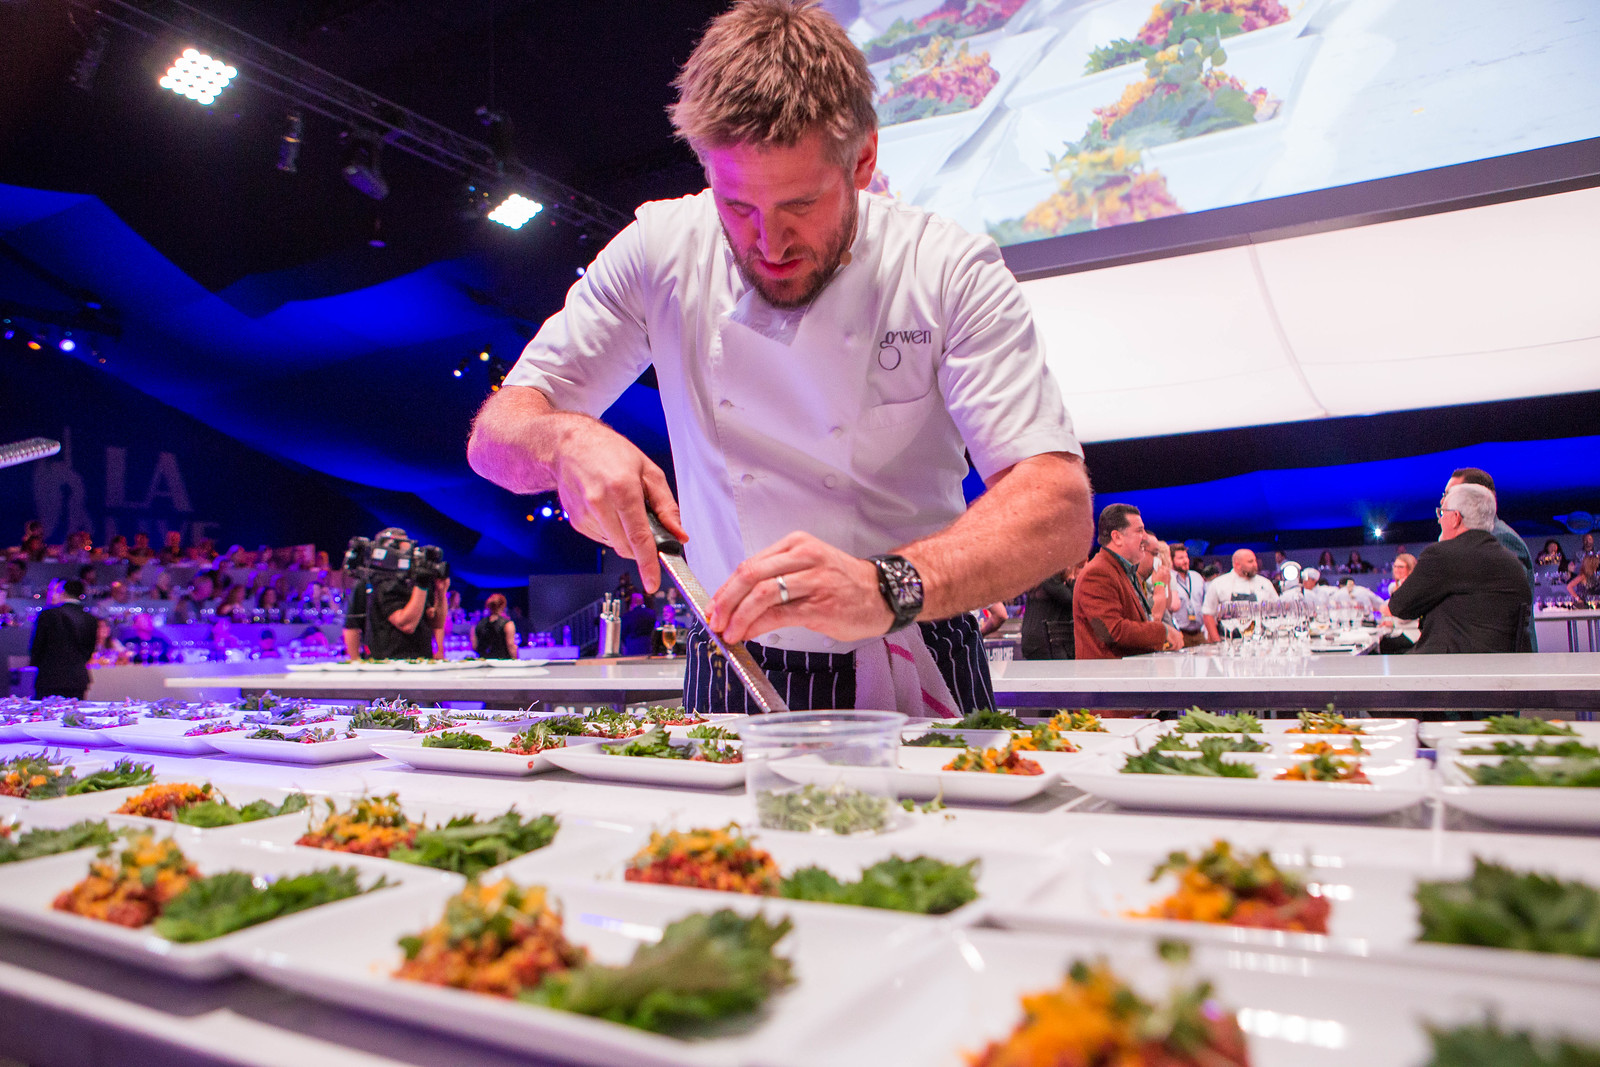 Chef plating food during All Star Chef Classic Event